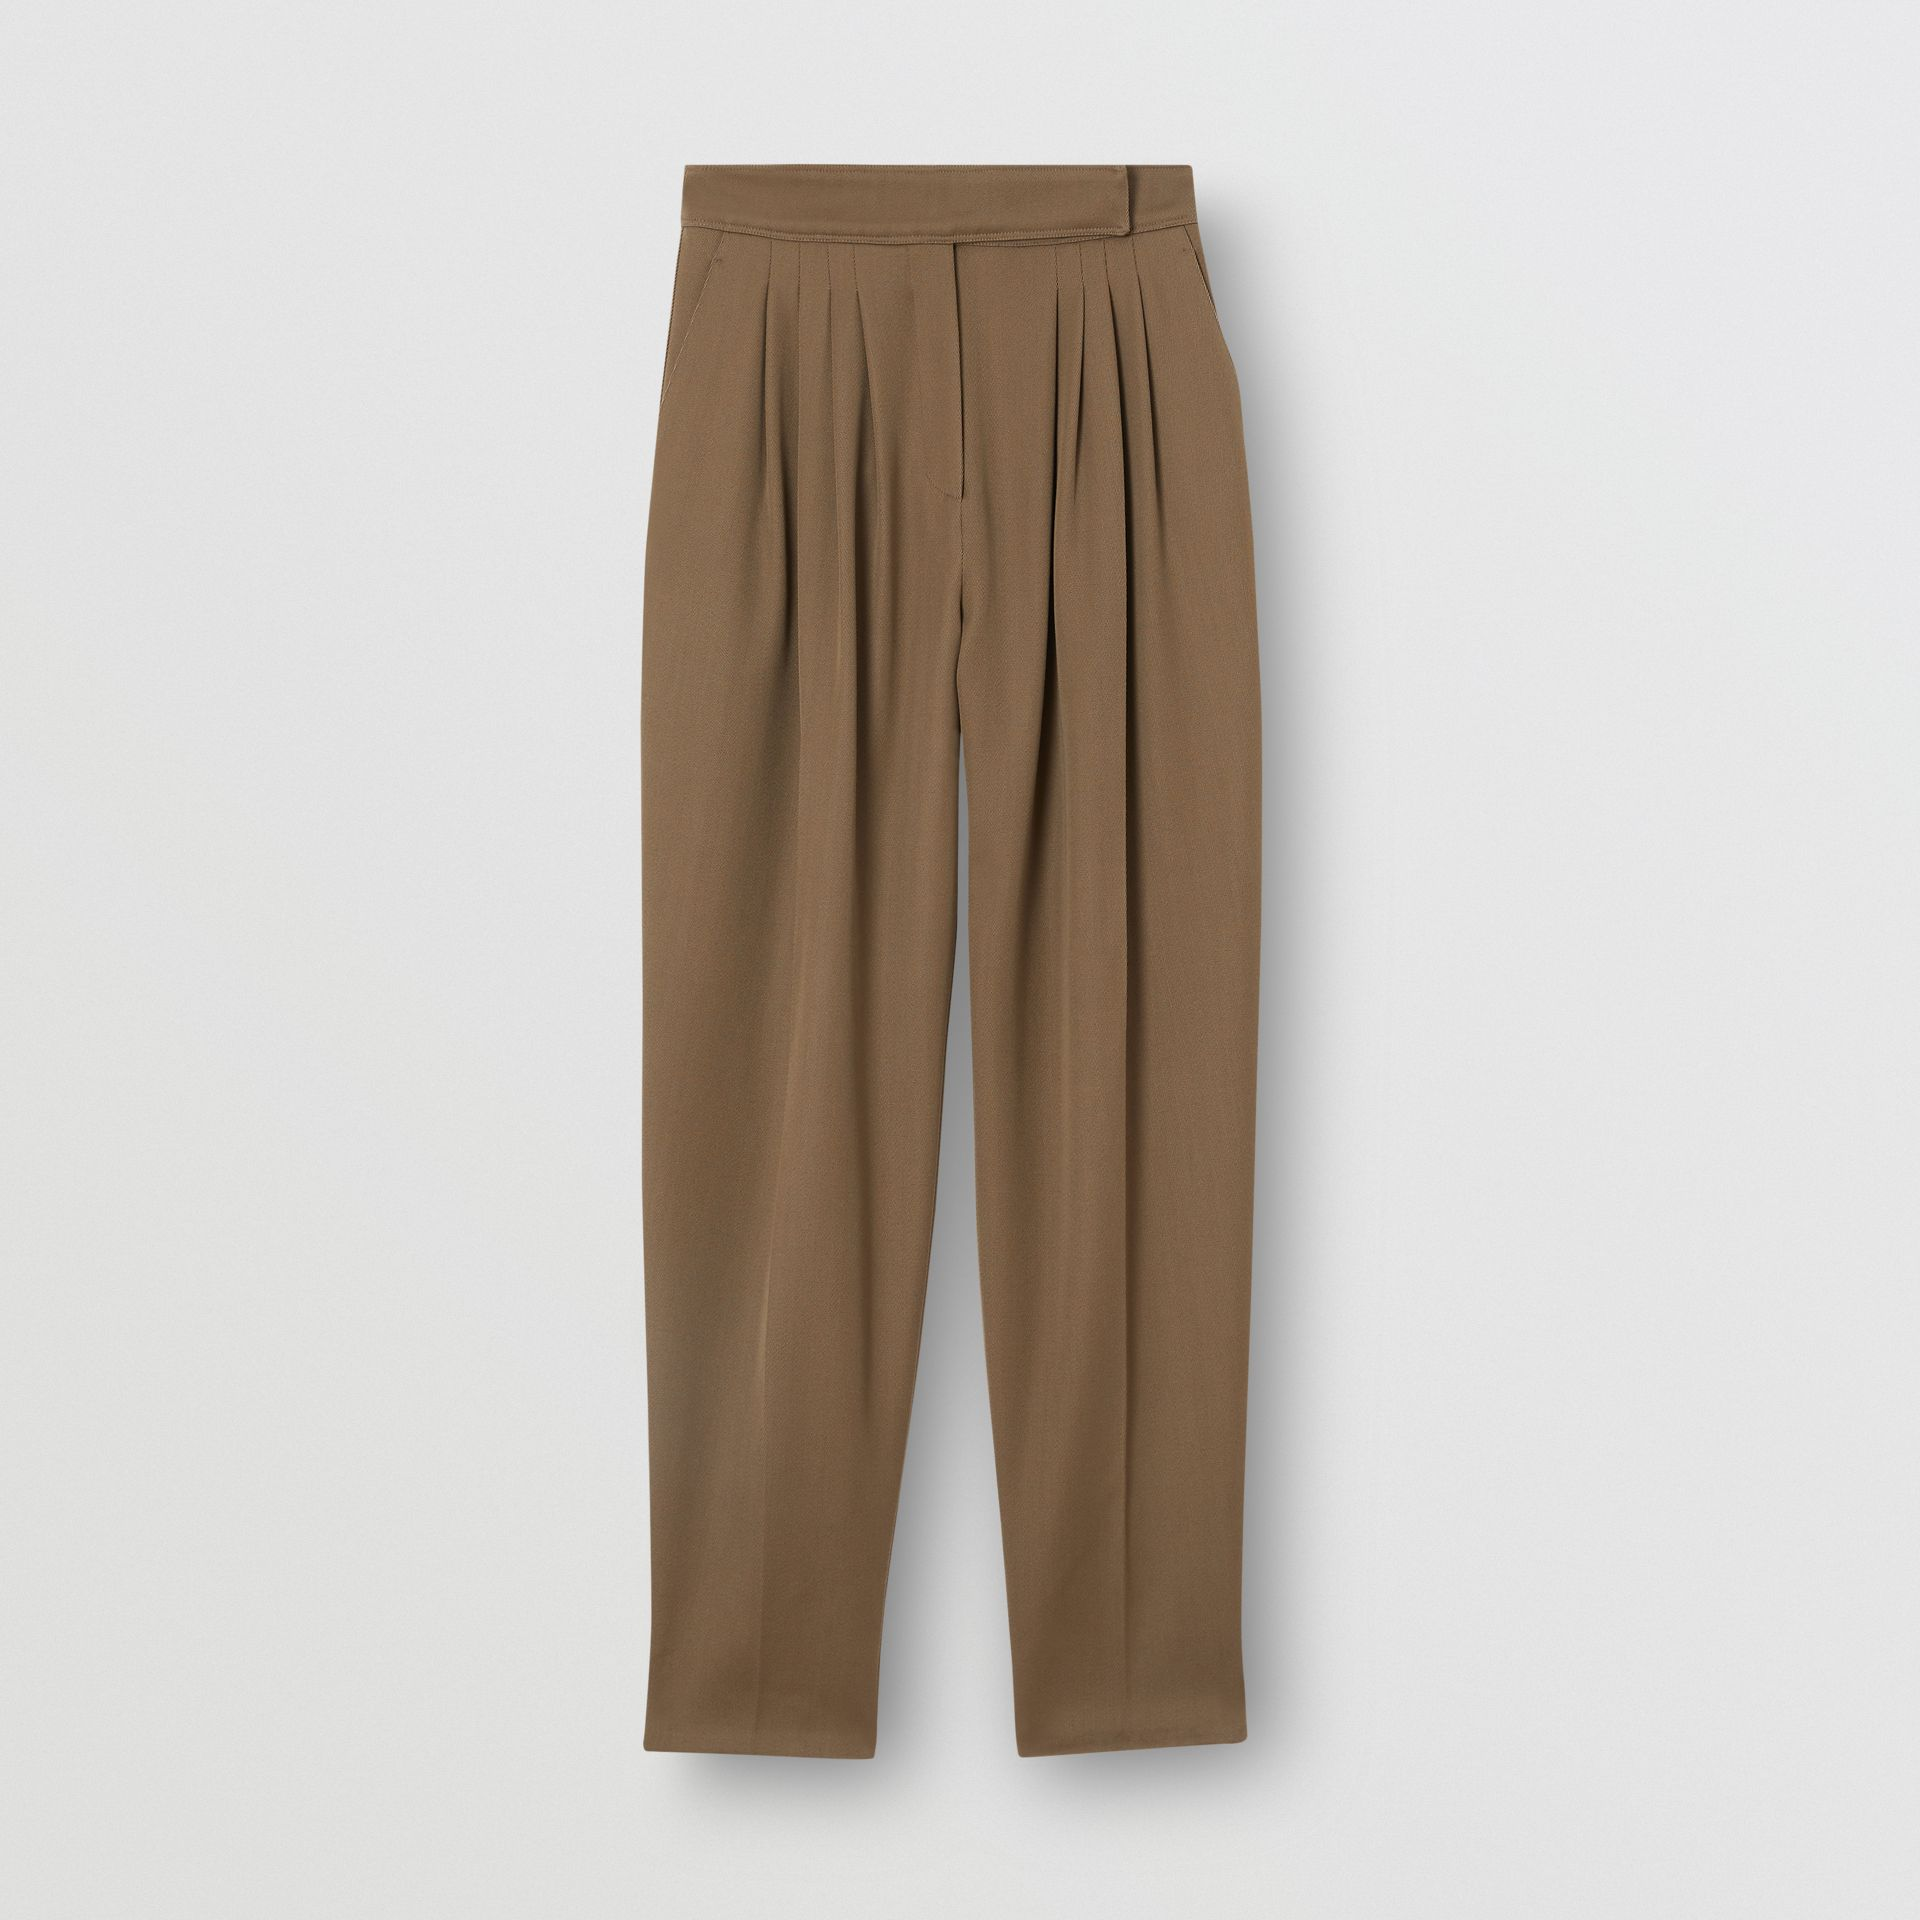 Pleat Detail Wool Twill Tailored Trousers in Warm Taupe - Women | Burberry - gallery image 3